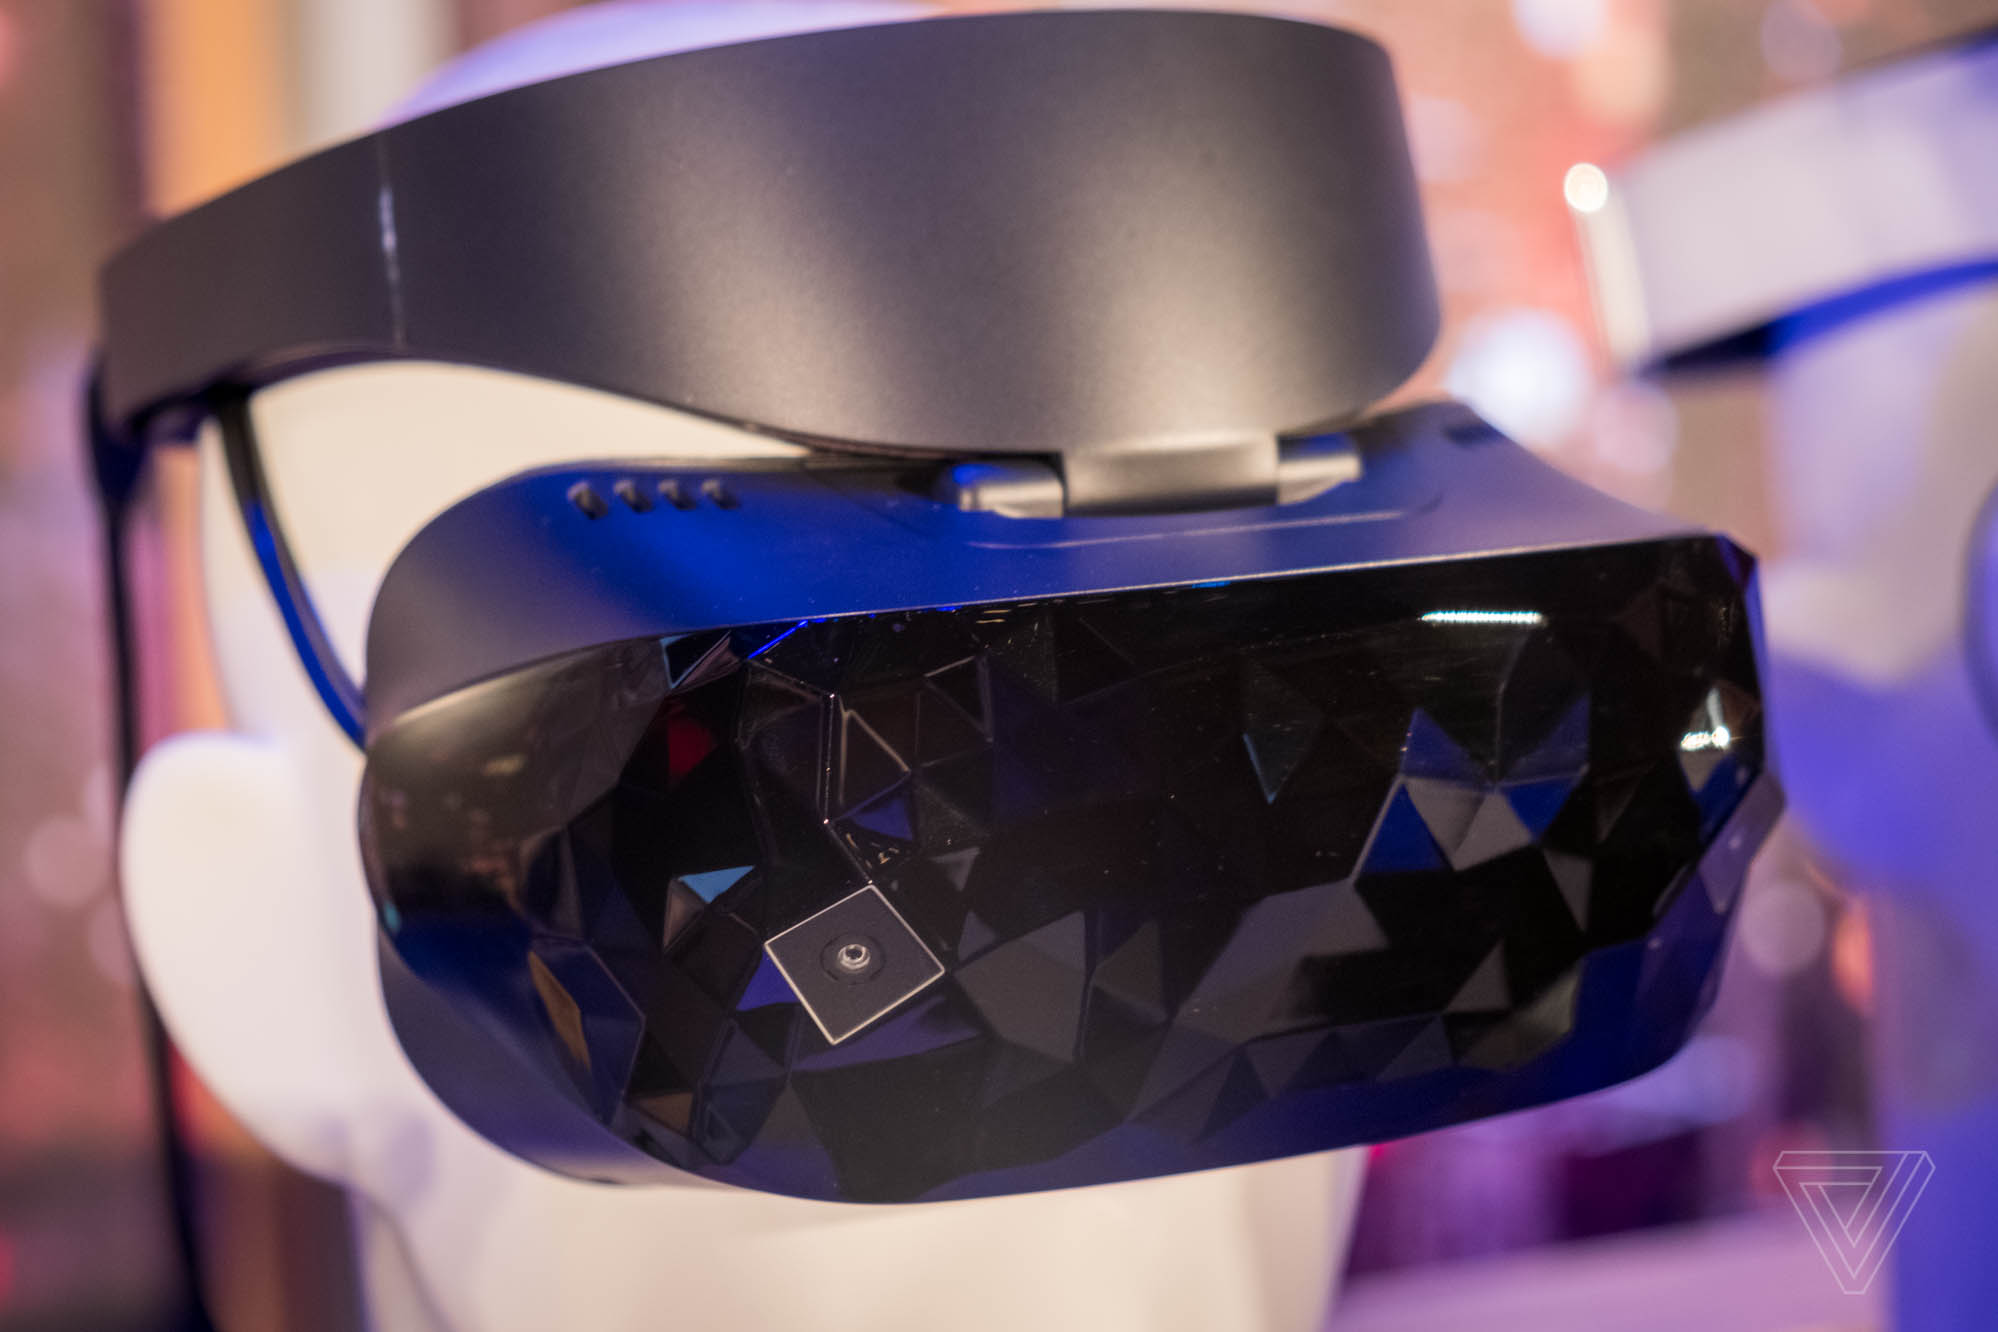 Microsoft unveils Windows Mixed Reality headsets at Computex